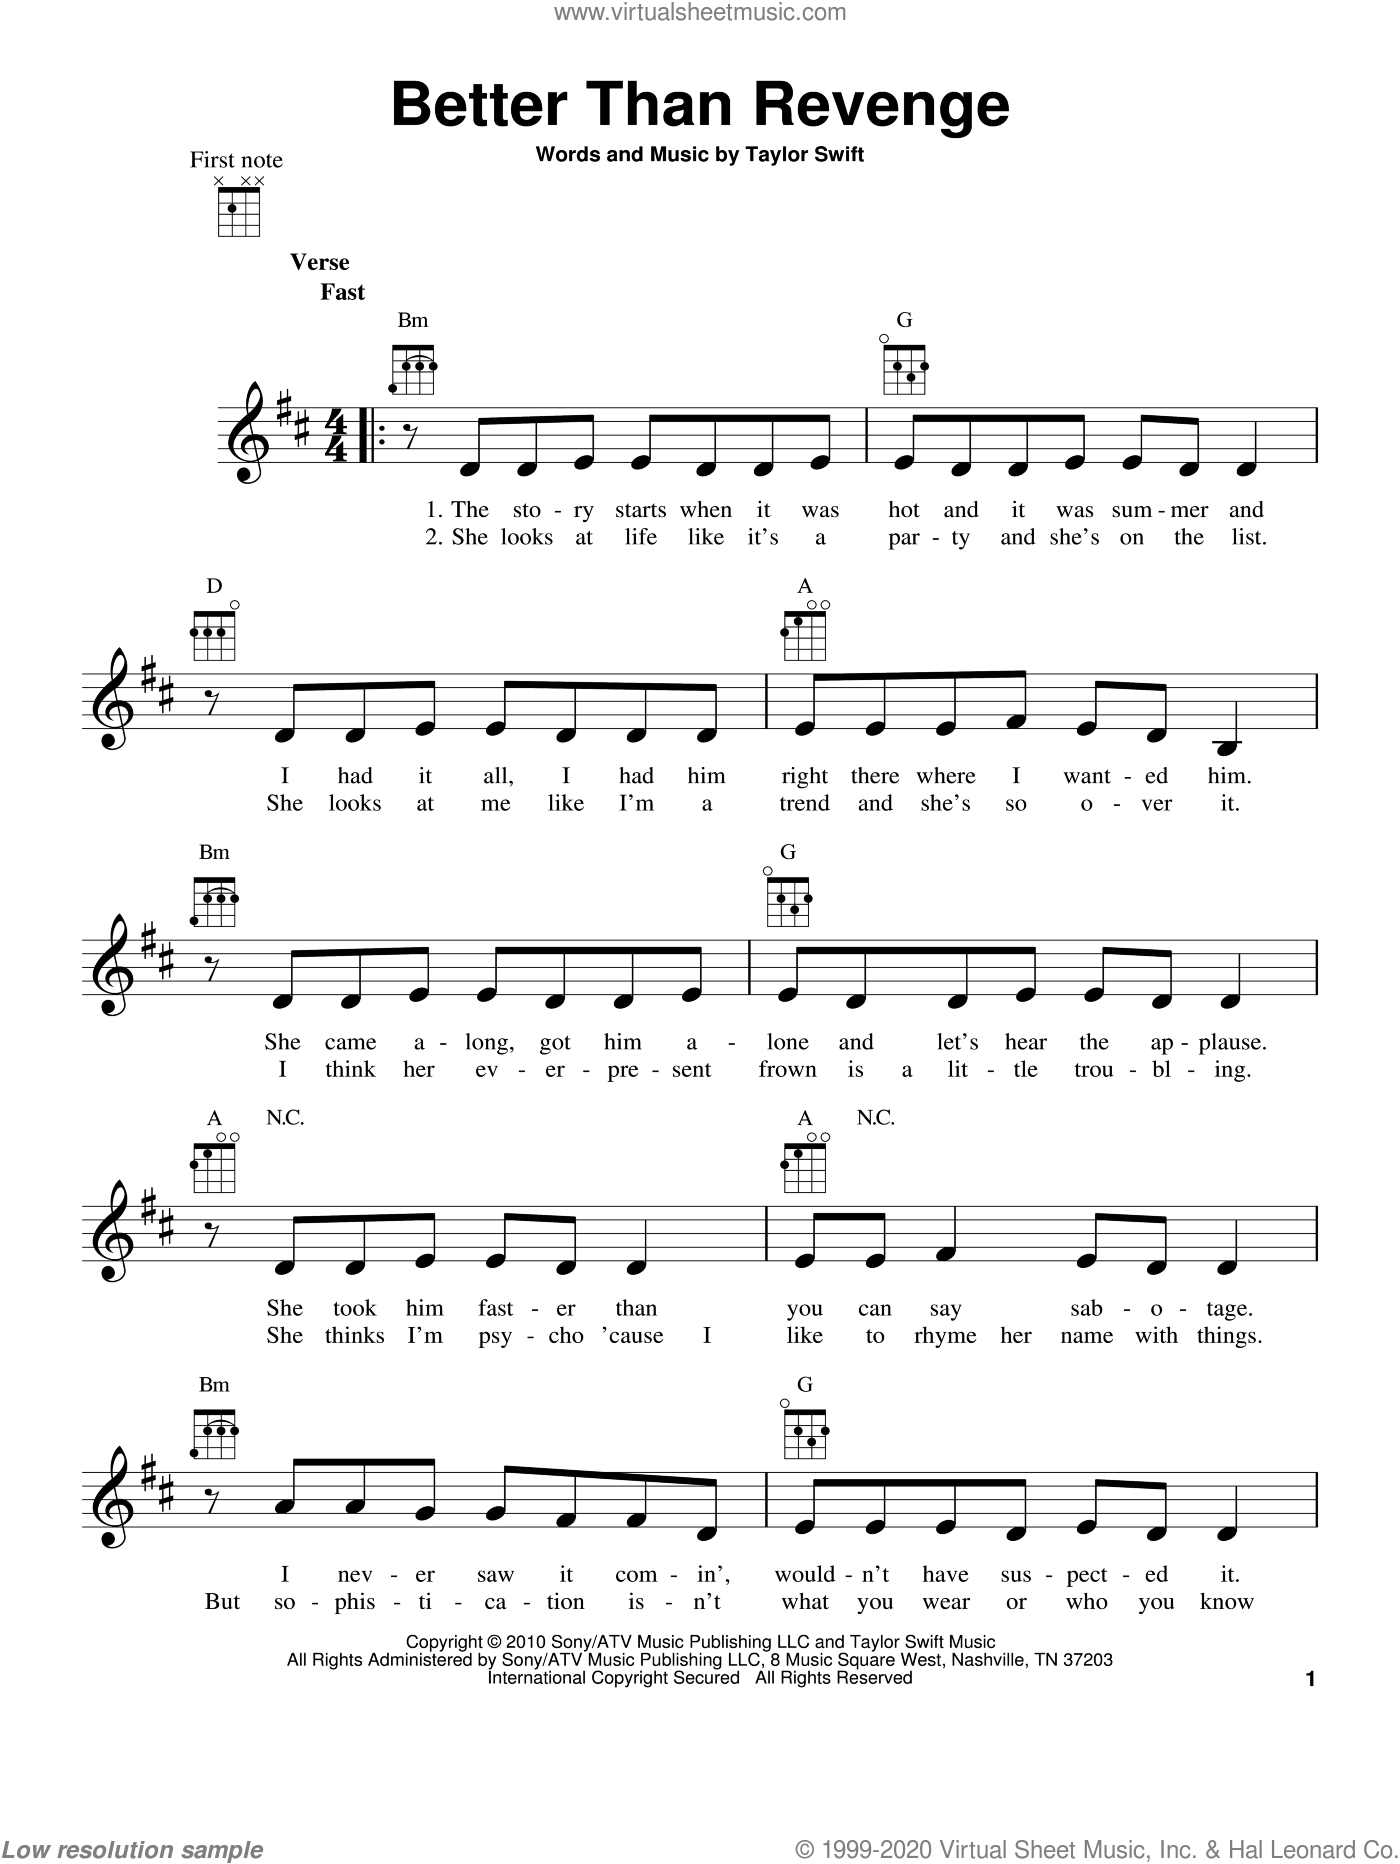 Better Than Revenge sheet music for ukulele by Taylor Swift, intermediate skill level